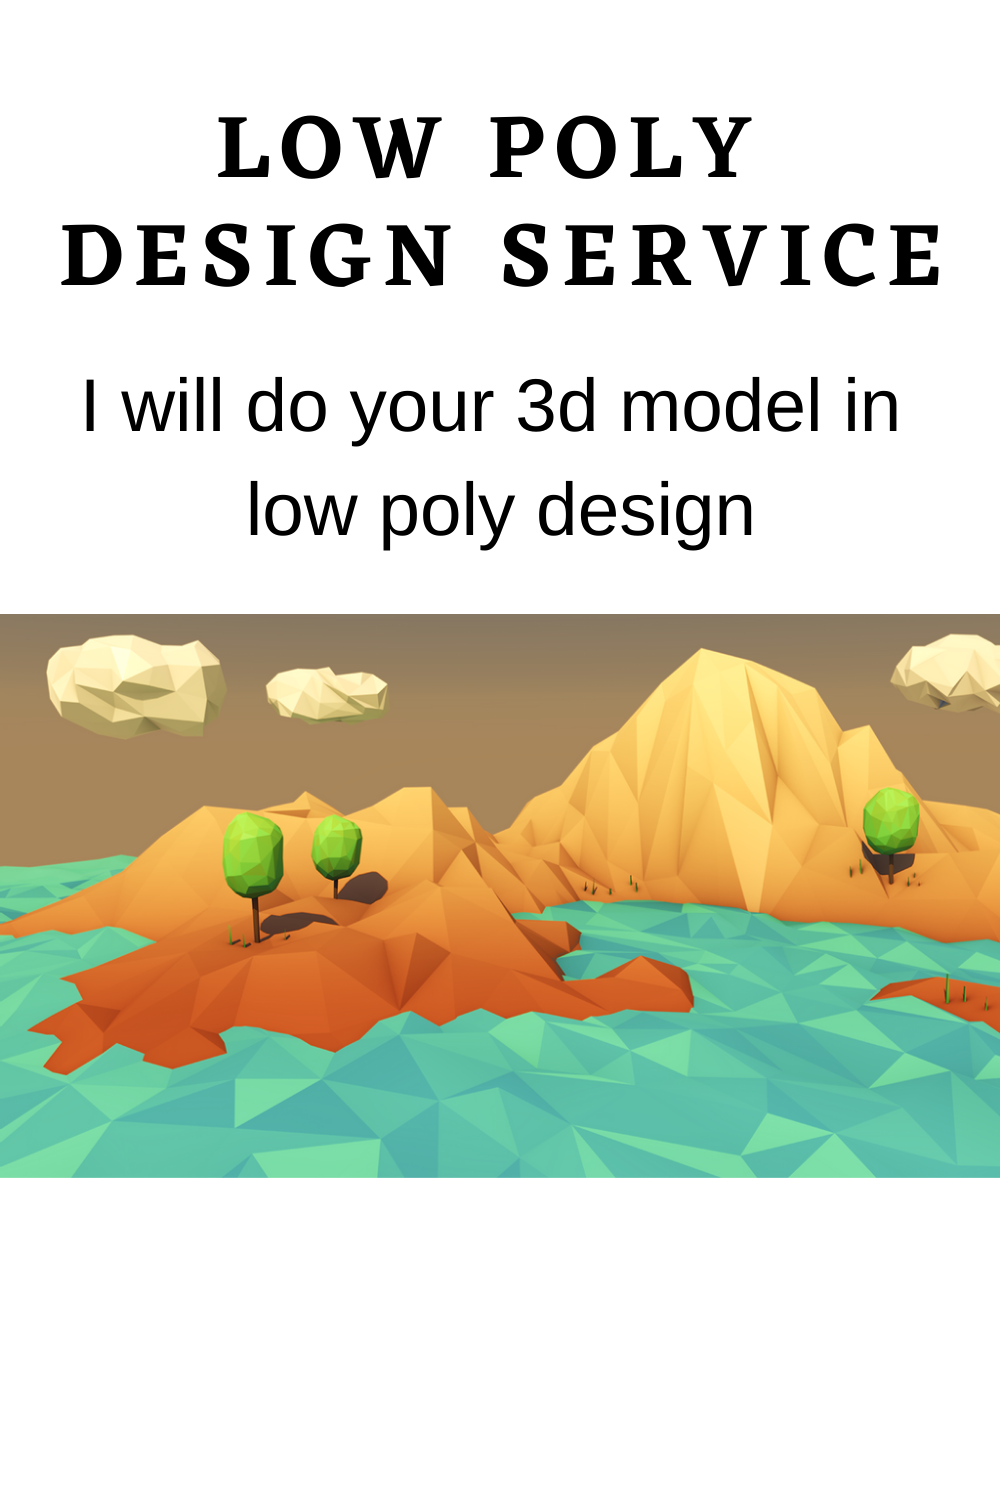 I will do your 3d model in low poly design, #3dinteriorlowpoly #lowpolyindoorplants3dmodel #3dmodelinlowpoly #industrylowpoly3dmodel #lowpolyjetpack3dmodel #lowpolyjacket3dmodel #lowpoly3djavascript #jacket3dlowpoly #lowpolyart3djigsawpuzzle #lowpolyjetfighter3dmodel #3dmodeljellyfishlowpoly #lowpolyjetski3dmodel #keyboard3dmodellowpoly #lowpoly3dkey #lowpoly3d #kungfulowpoly3dmodel #3dlowpolylandscape #3dlowpolyleaf #unity3dlowpolylight #lowpolylion3dmodel #lowpolylandscape3dmodel